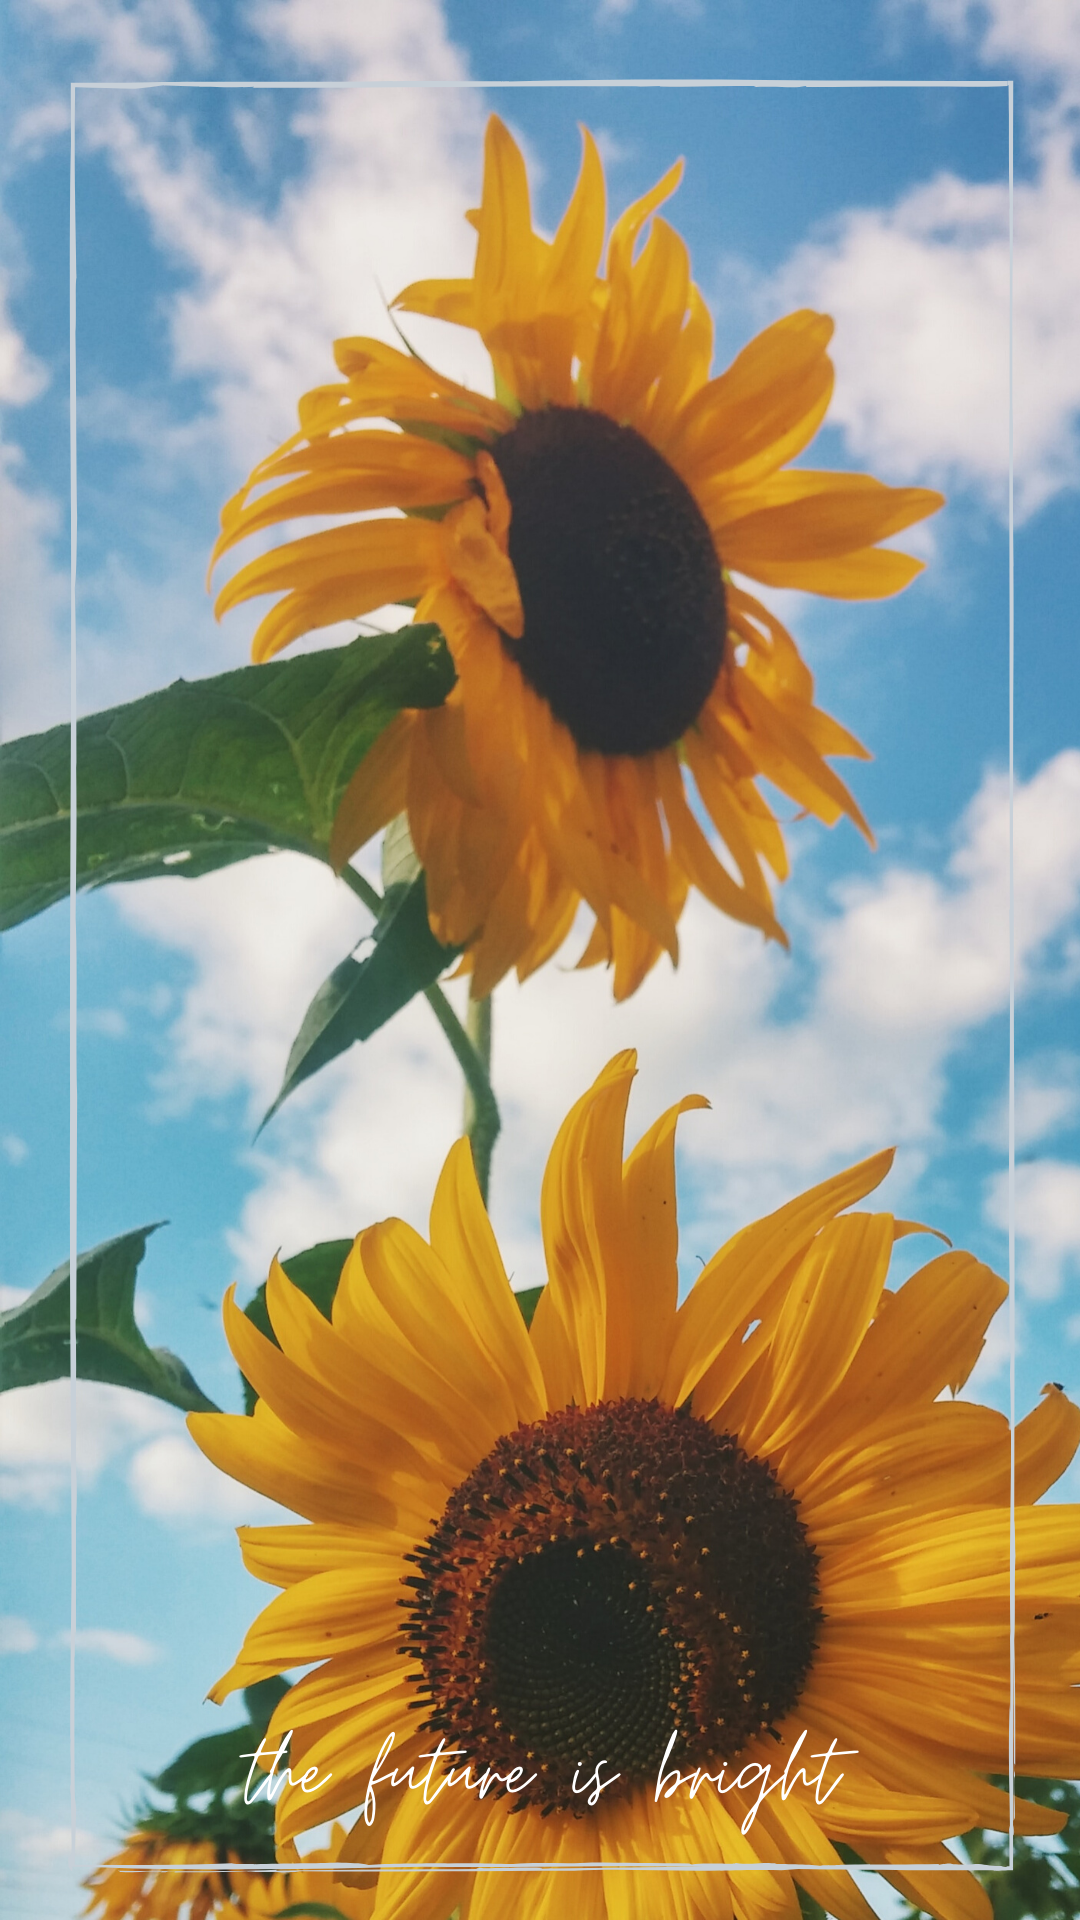 Sunflower Wallpaper iphone background for january